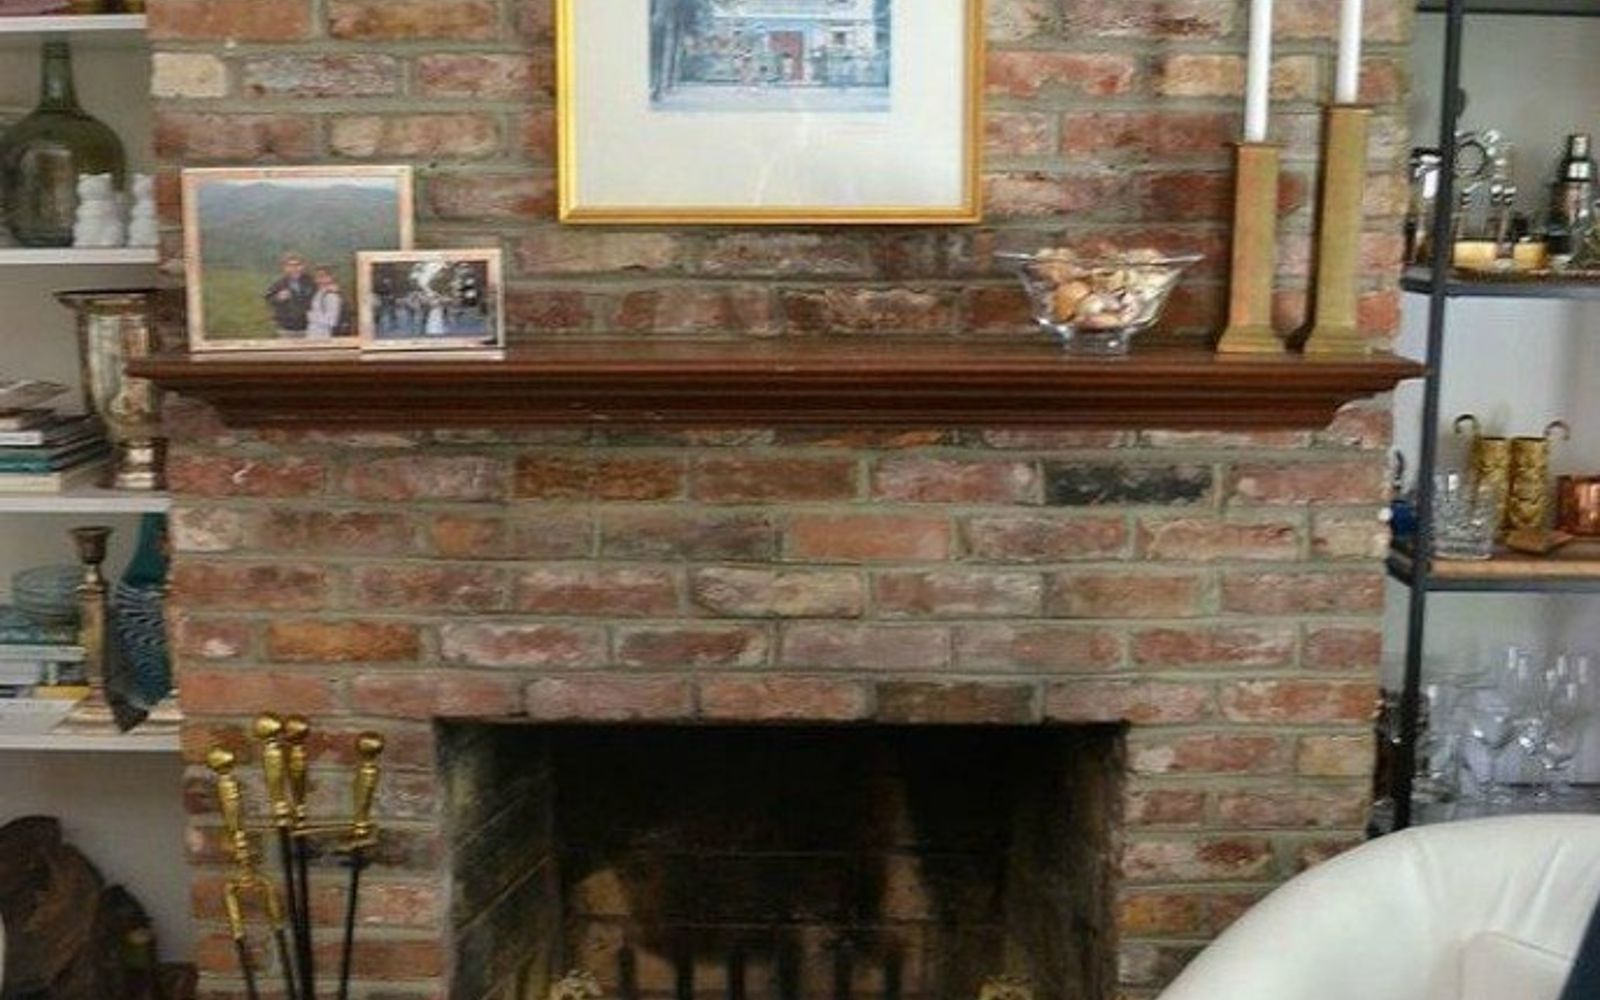 s 10 gorgeous ways to transform a brick fireplace without replacing it, concrete masonry, fireplaces mantels, The problem The brick color doesn t match